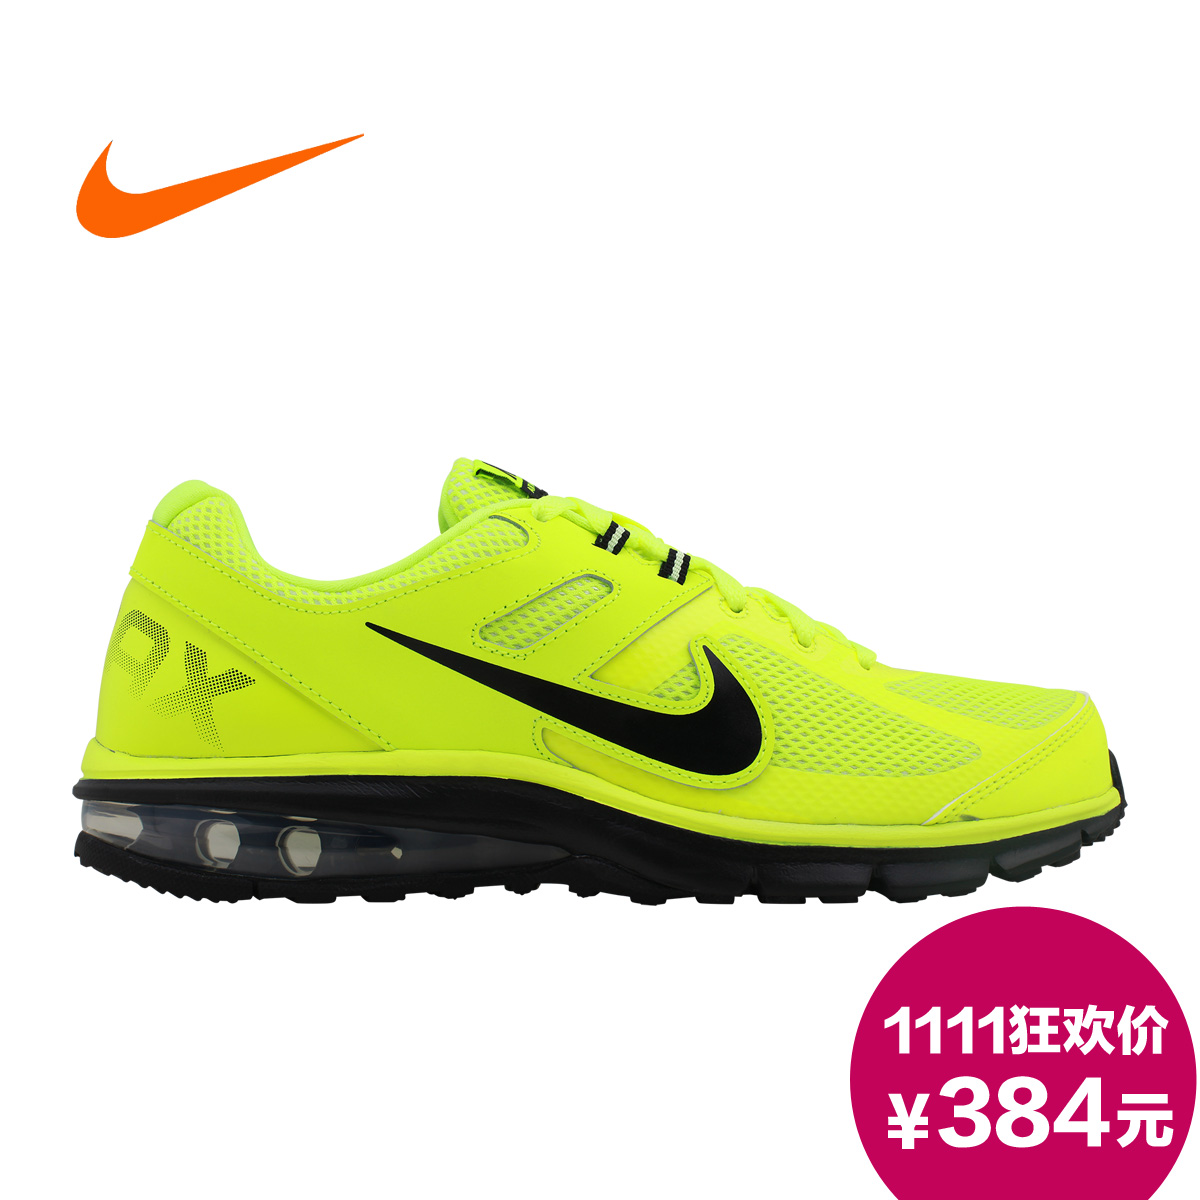 Nike Nike Official NIKE AIR MAX DEFY RN men running shoes